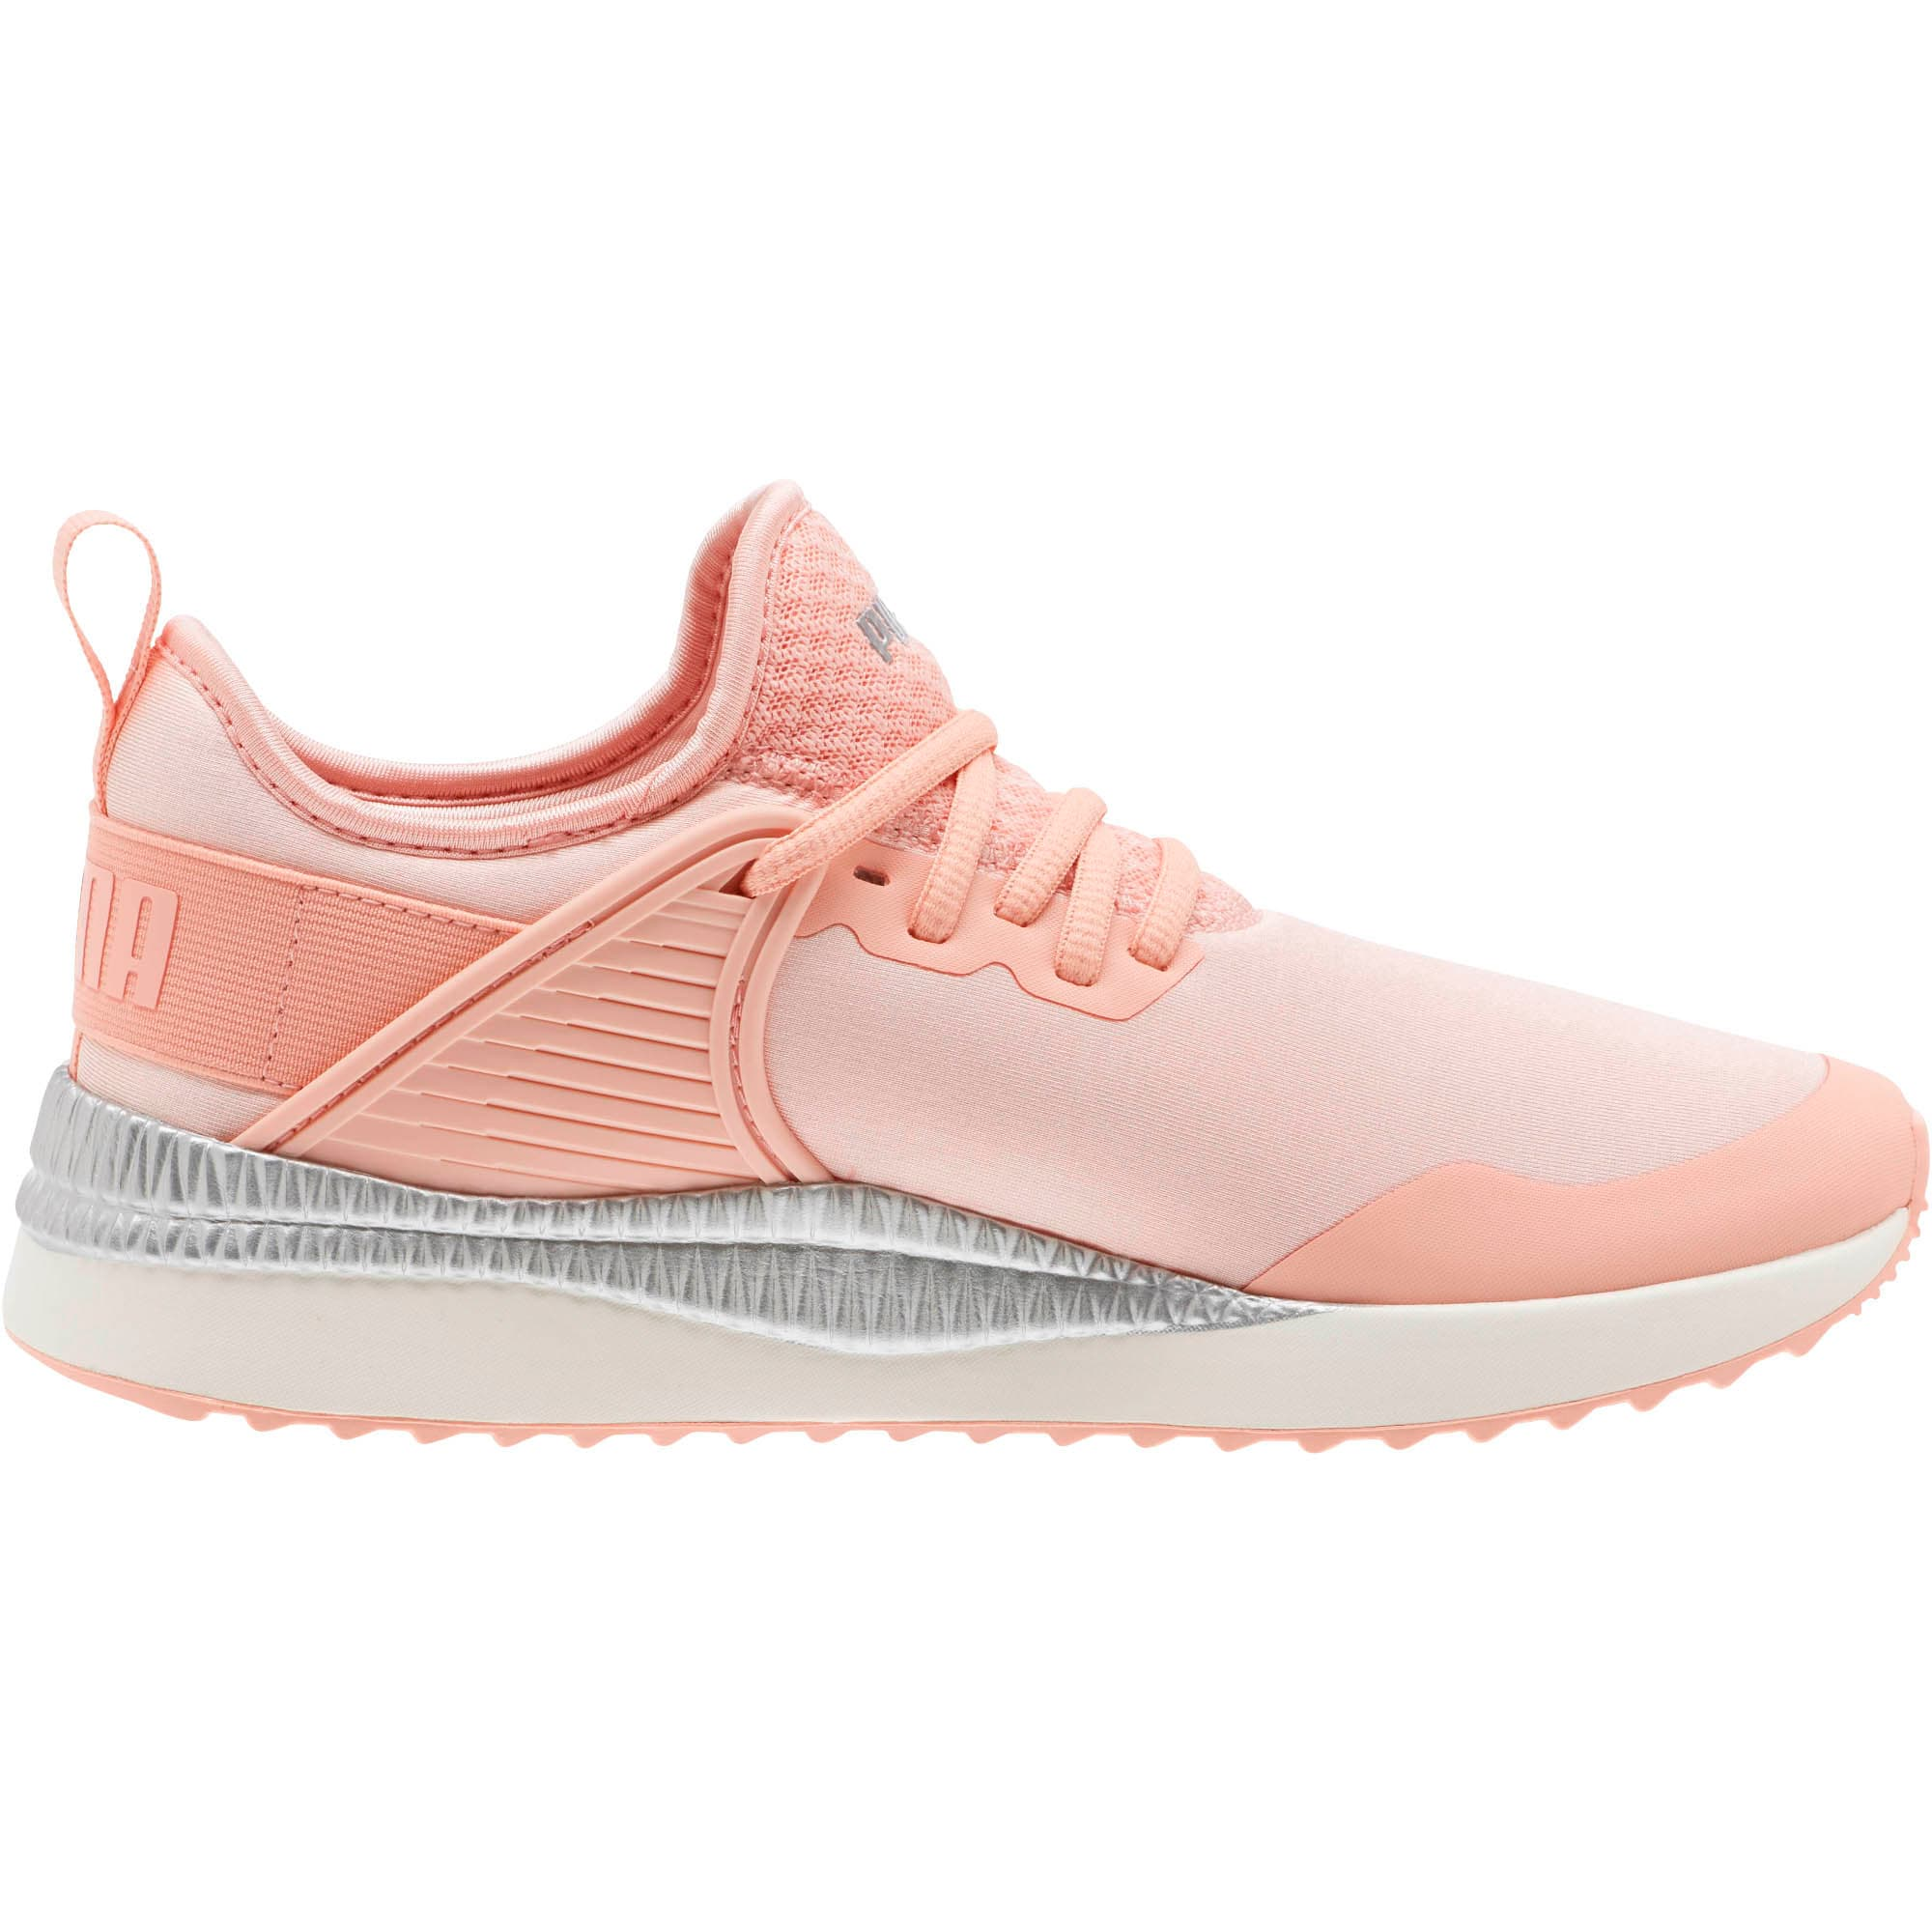 Thumbnail 3 of Pacer Next Cage ST2 Women's Sneakers, Peach Bud-Puma Silver, medium